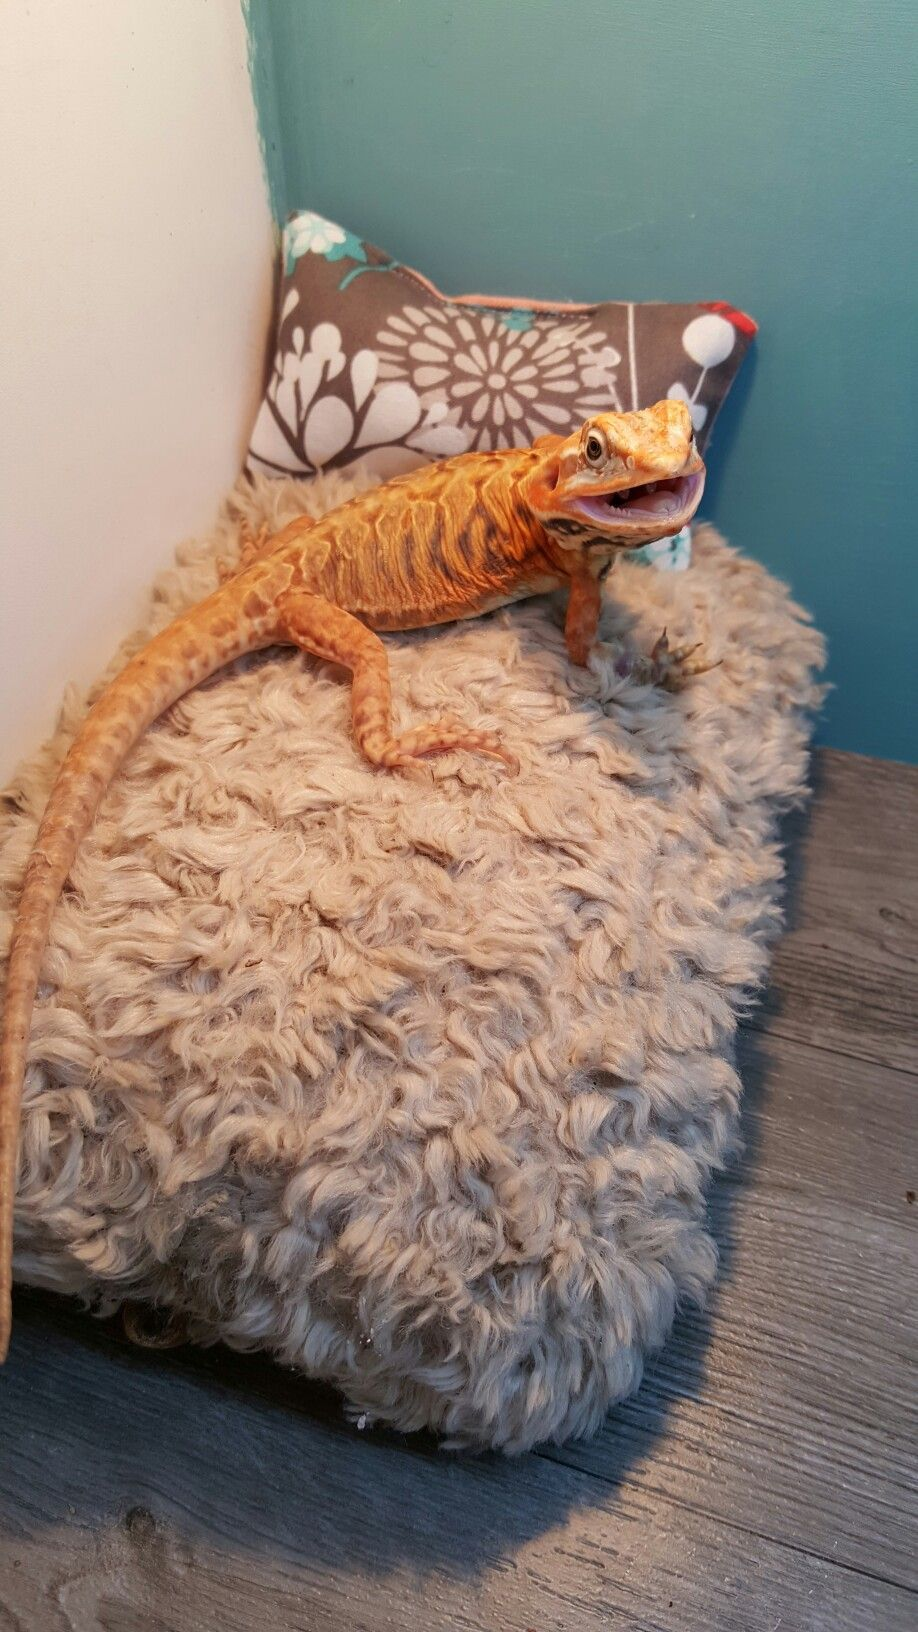 www ksmsdragonlandings   custom made bearded dragon hammocks pillow beds and wooden beds www ksmsdragonlandings   custom made bearded dragon hammocks      rh   pinterest